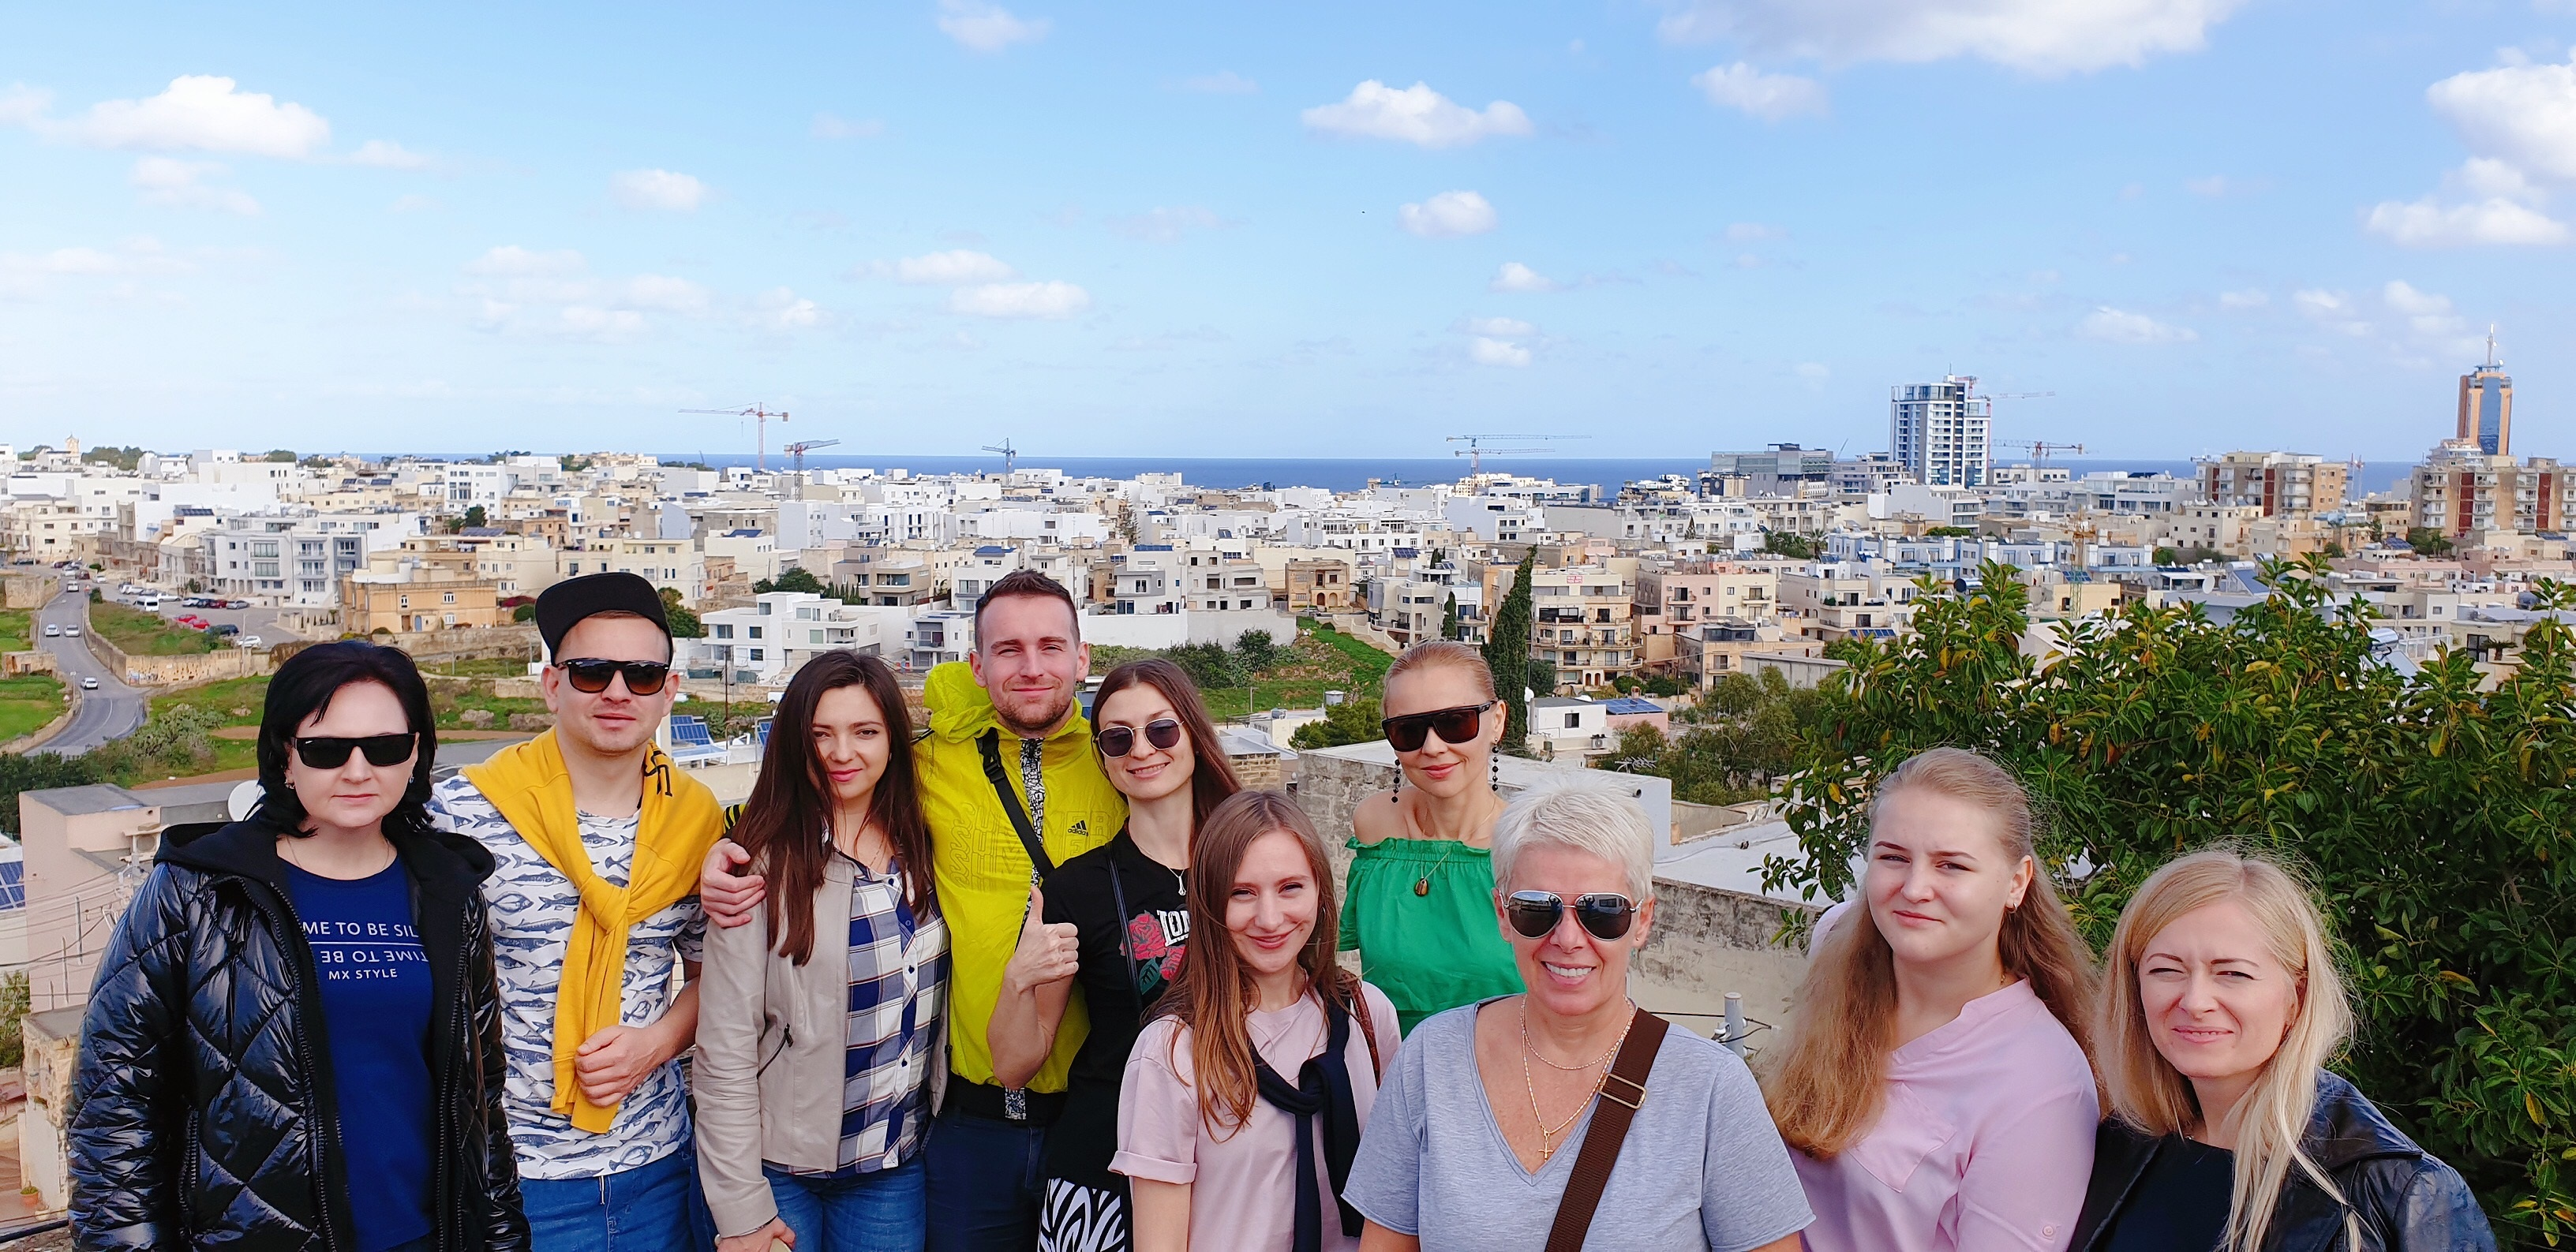 Turkish Airlines and Visit Malta FAM Trip English language schools in Malta. Study English in Malta with Gateway School of English GSE. Quality English courses and best prices